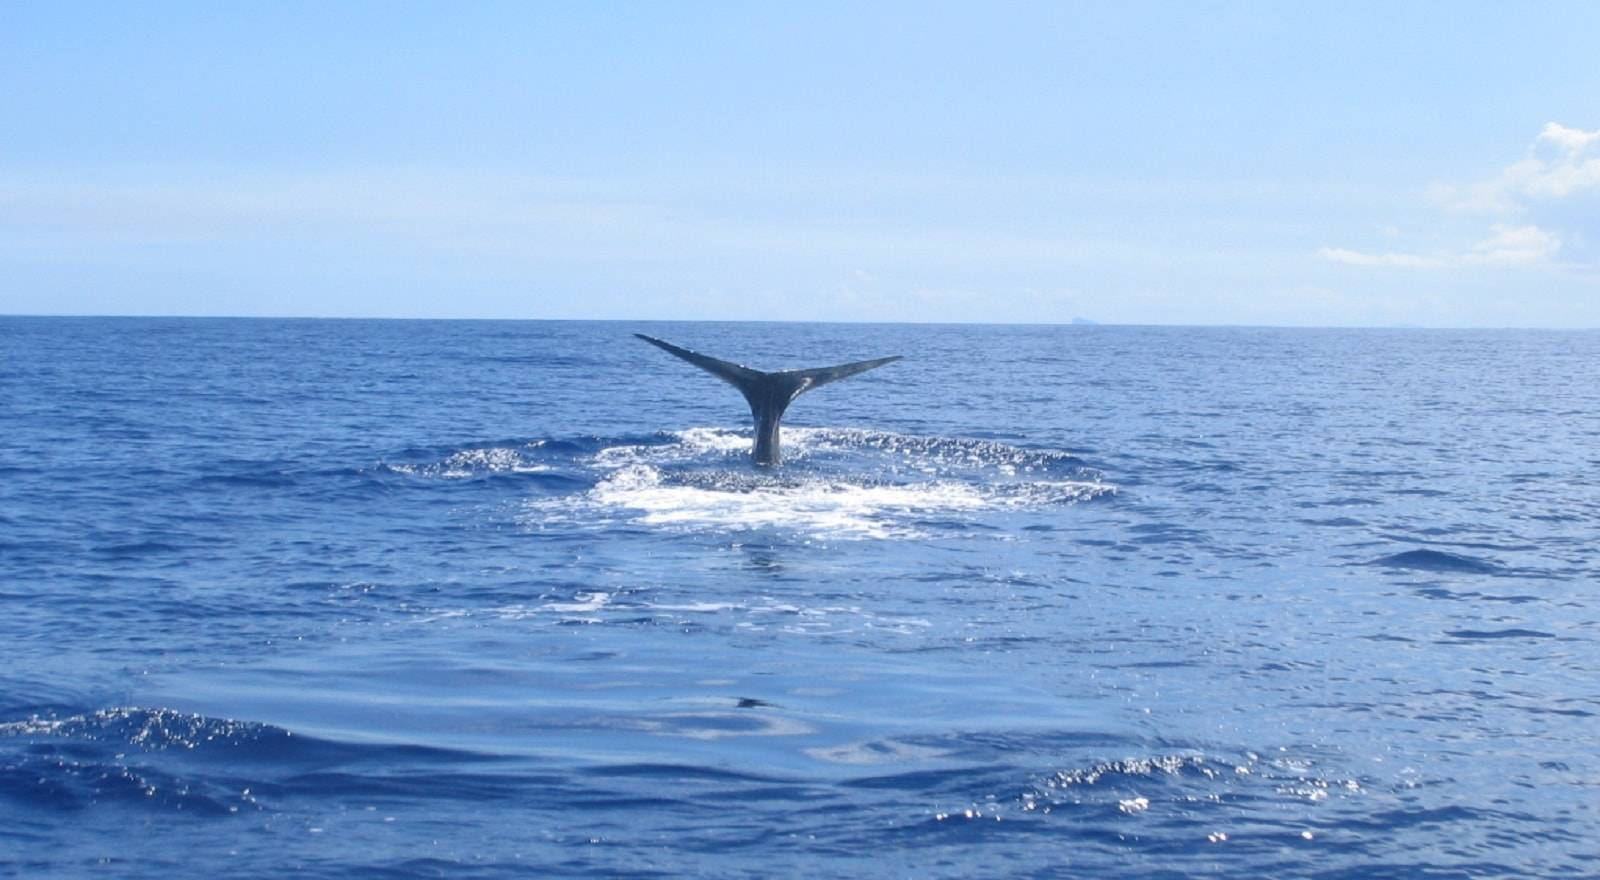 Whales Encounter, Whales Encounter, Whales Encounter